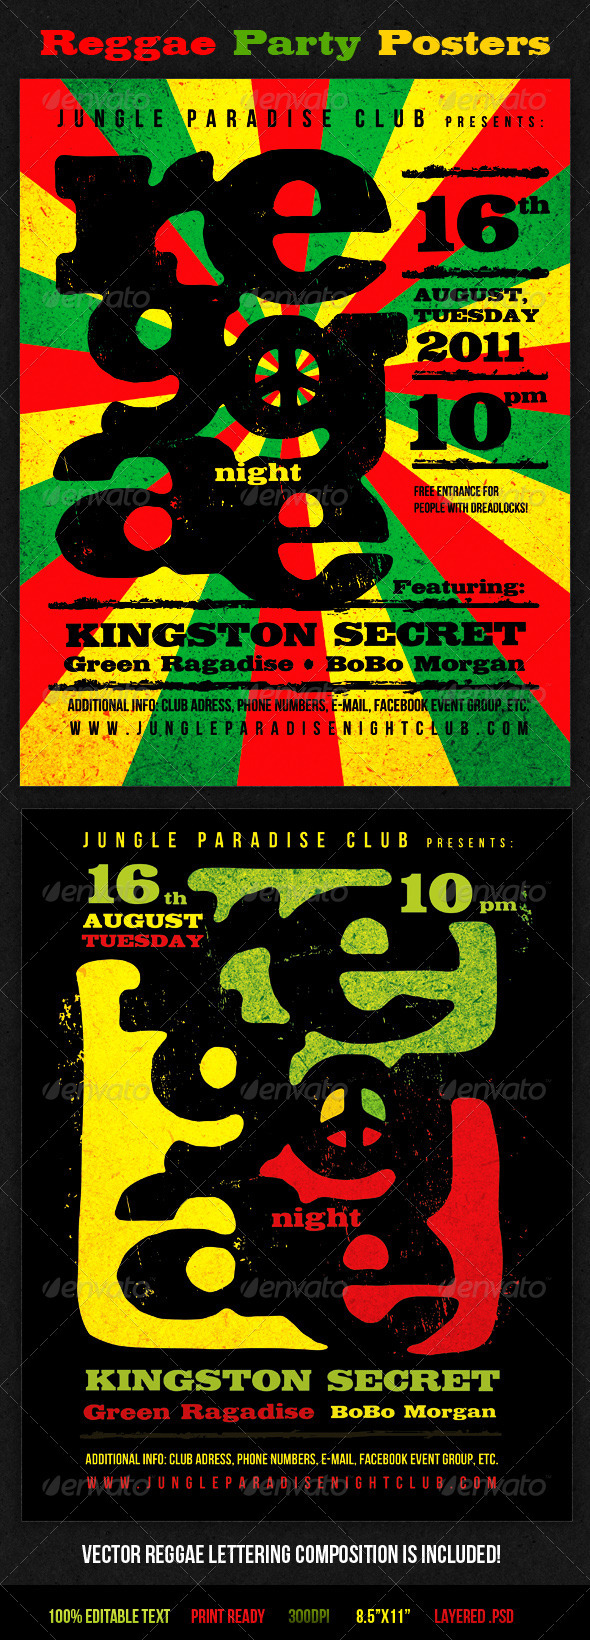 Print Templates : Reggae Party Posters GraphicRiver 405274 - Flyers Events Clubs & Parties